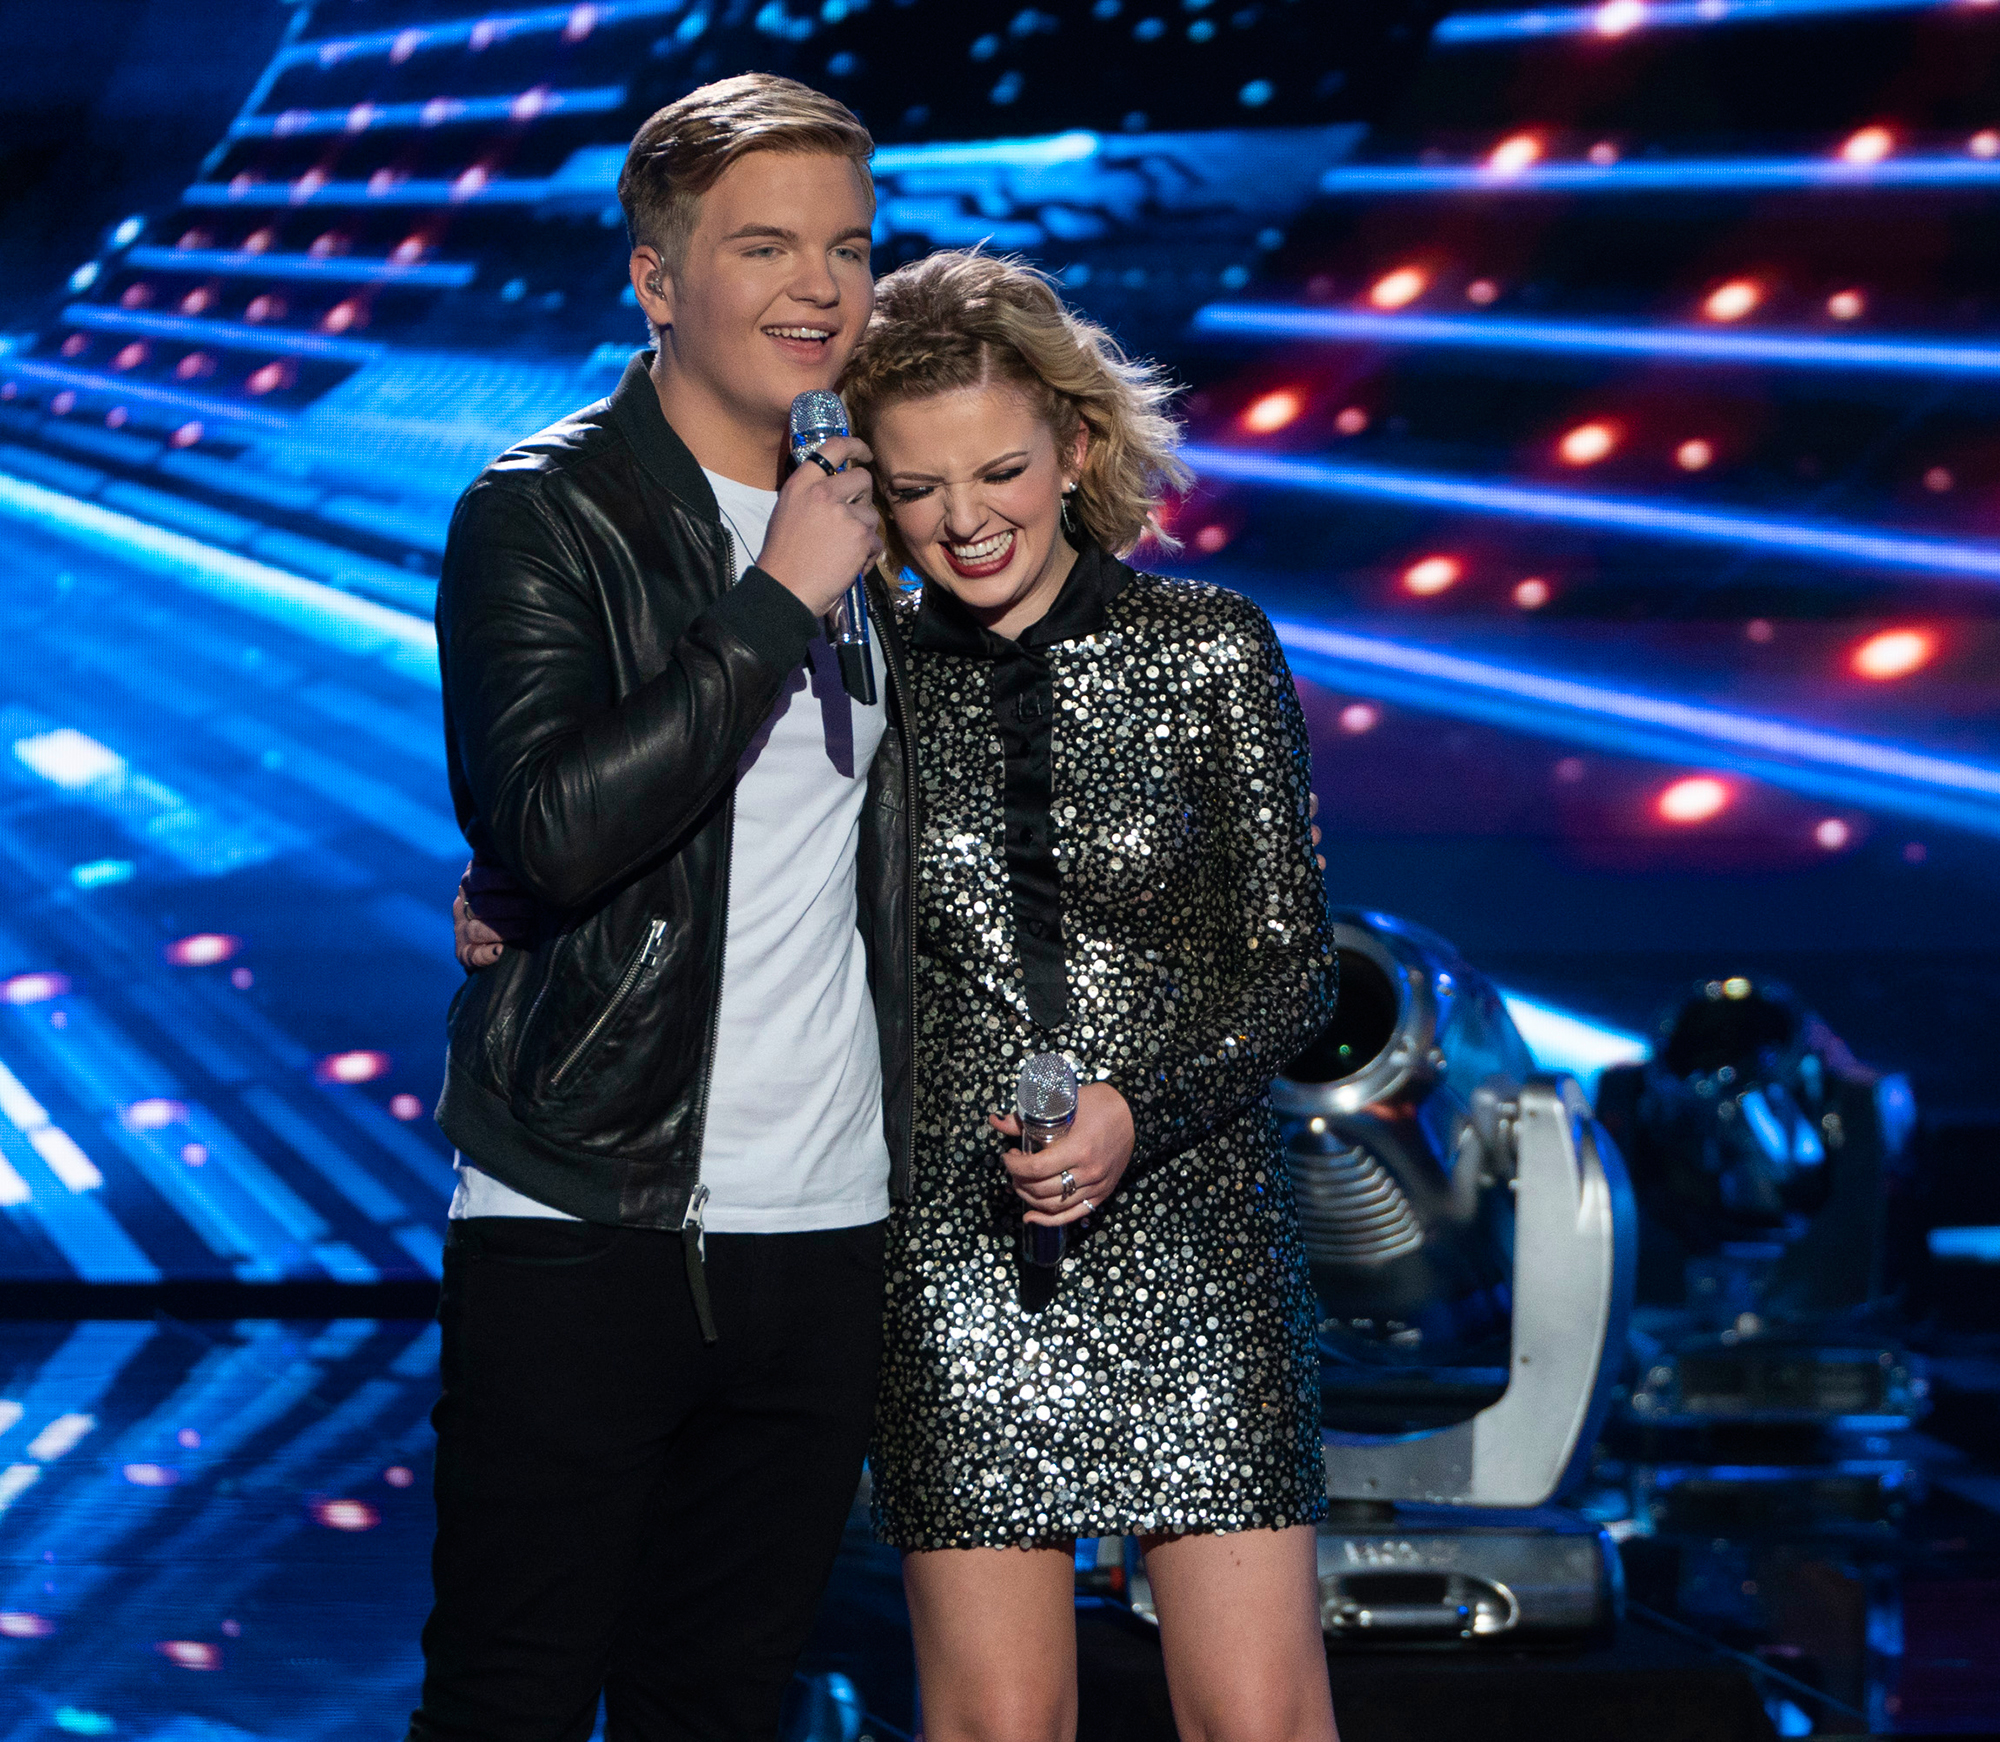 Maddie Poppe crowned Season 16 victor of 'American Idol'